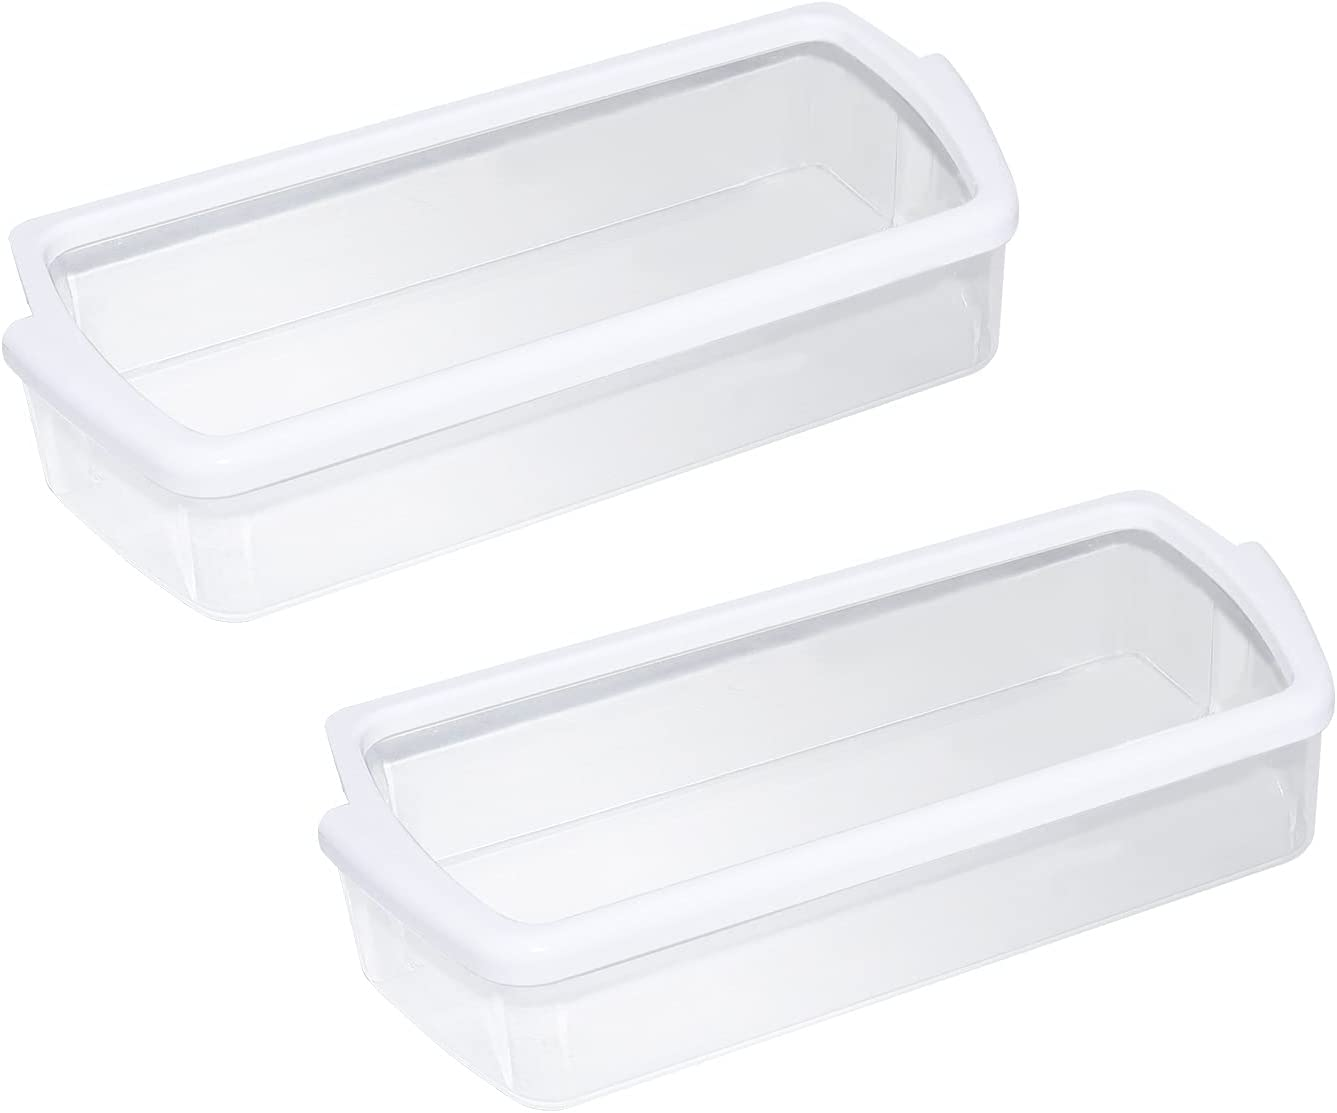 W10321304 Door SEAL limited product Shelf Bin Whirlpool Refrigerators with Department store Compatible